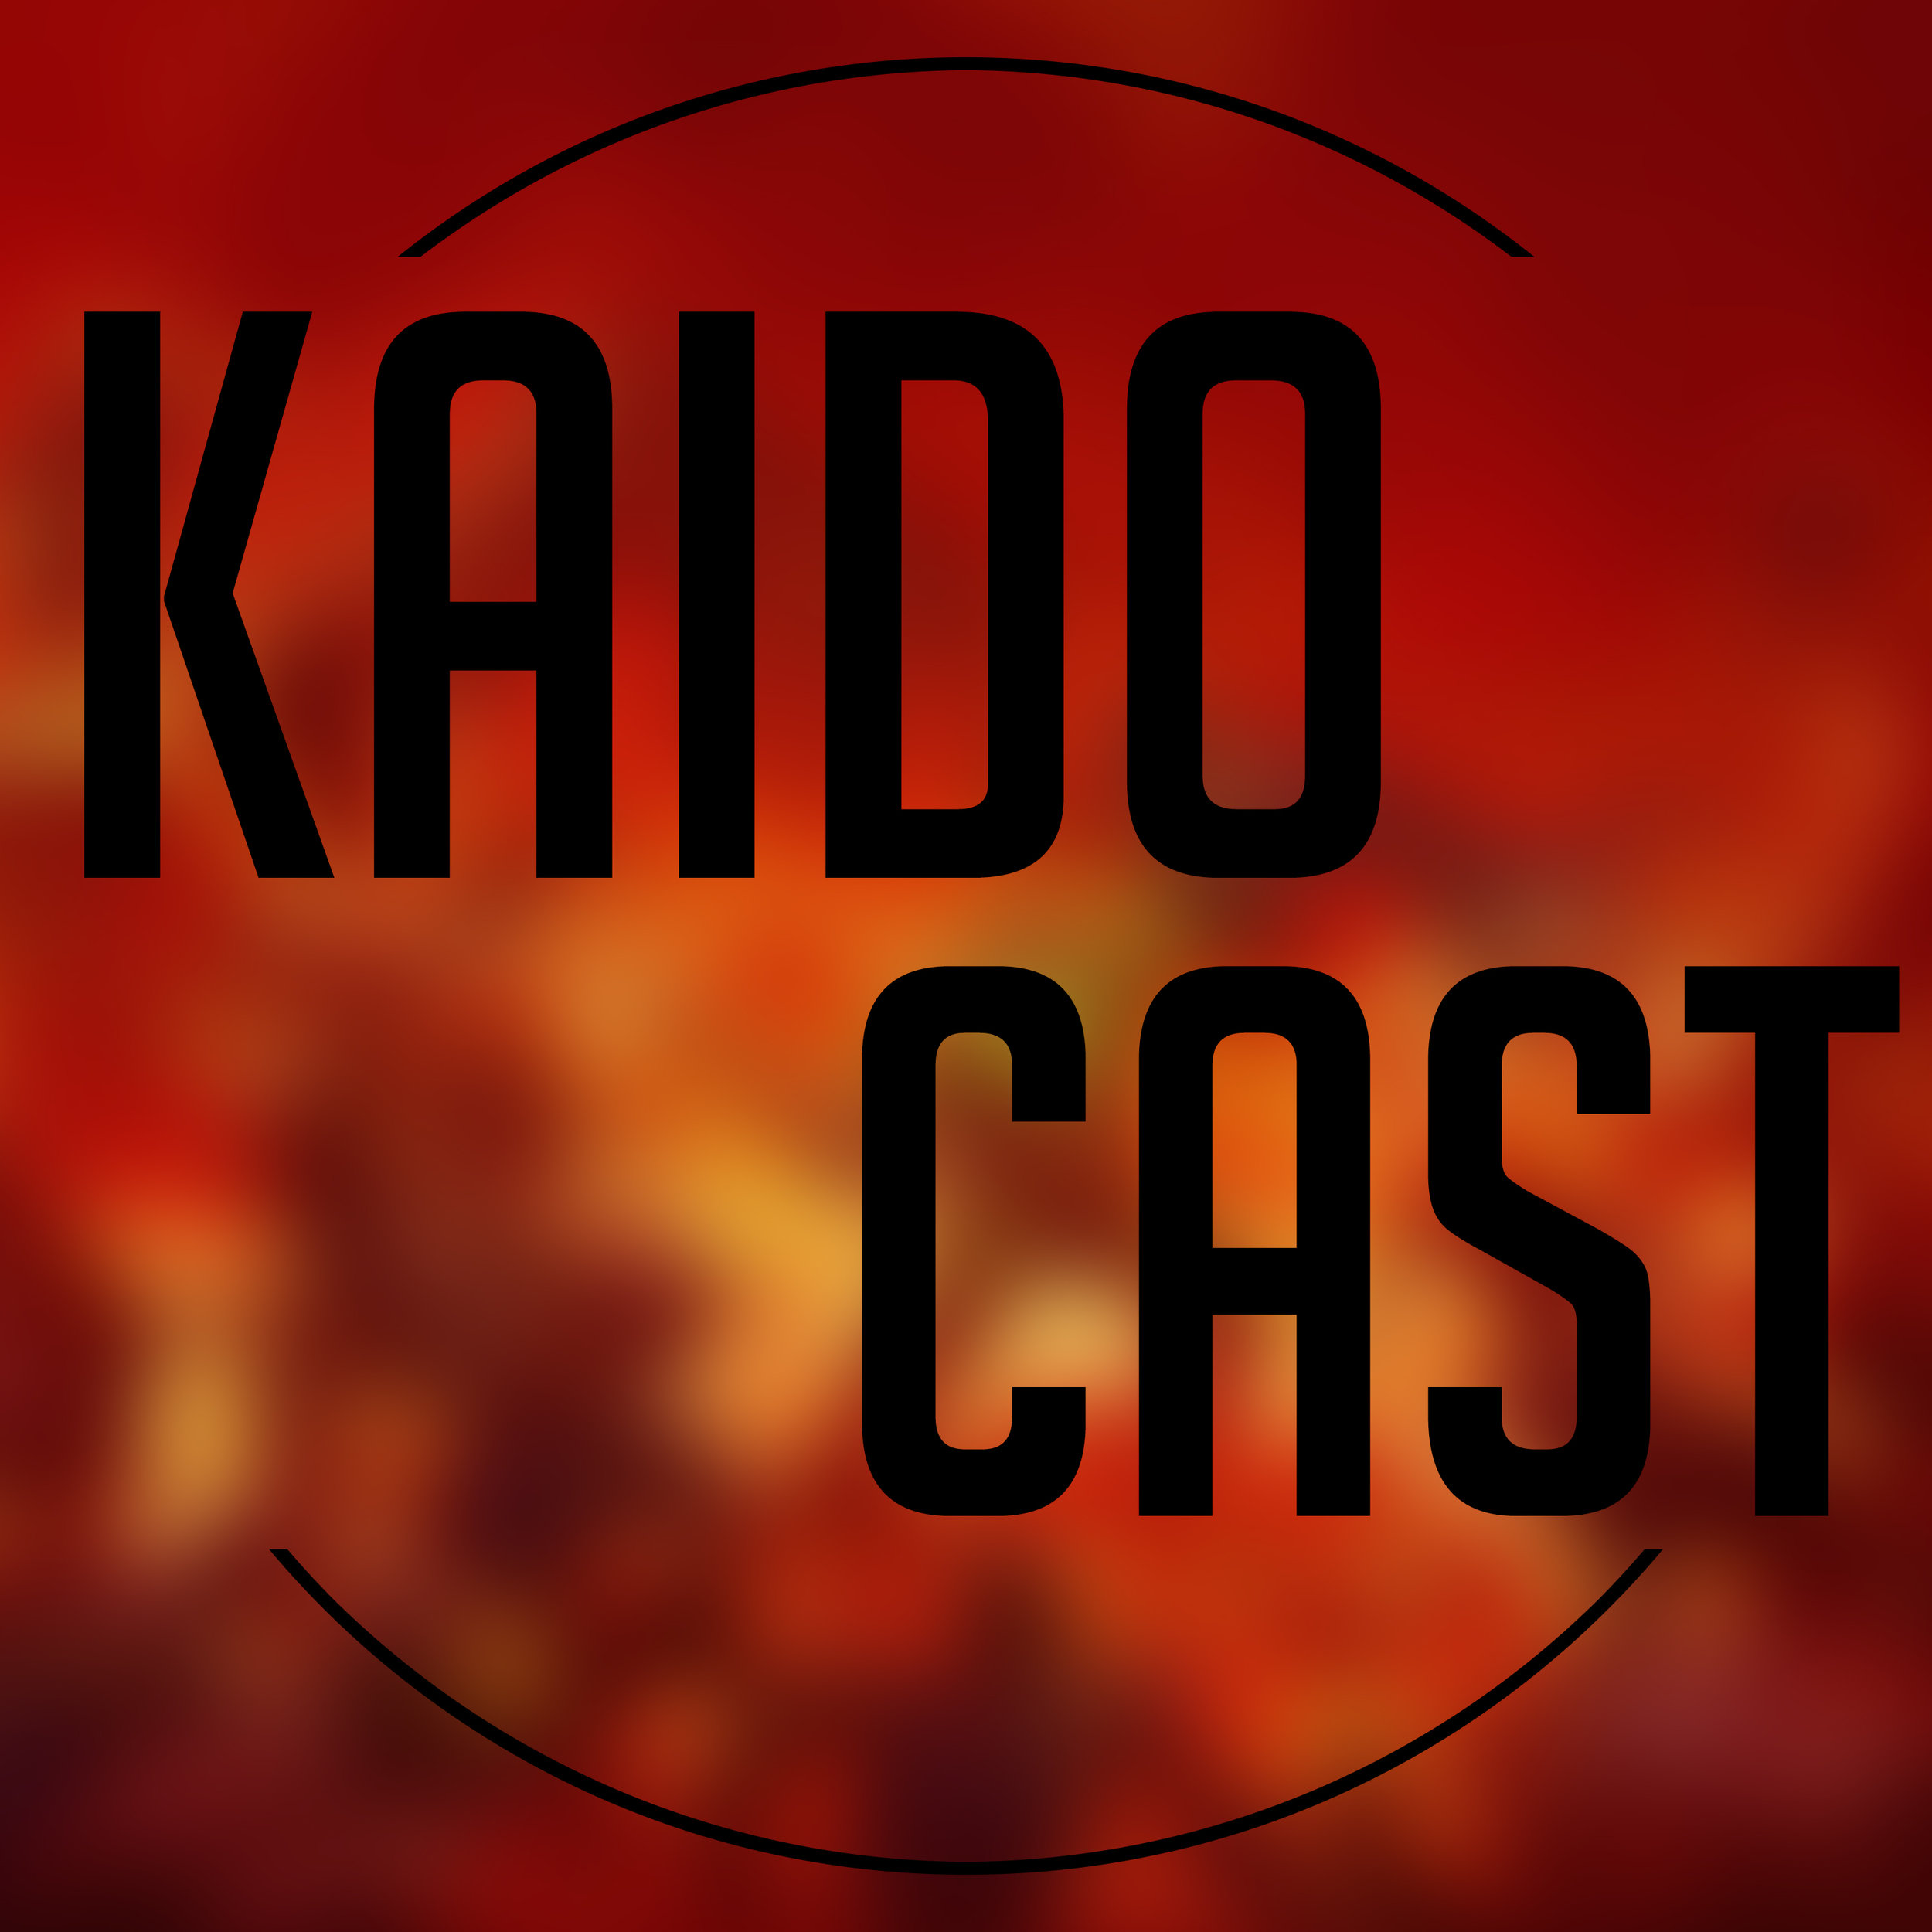 KAIDO Cast 03 - Creamy Delight - We all know the best way to recover from E3 is a lengthy podcast.